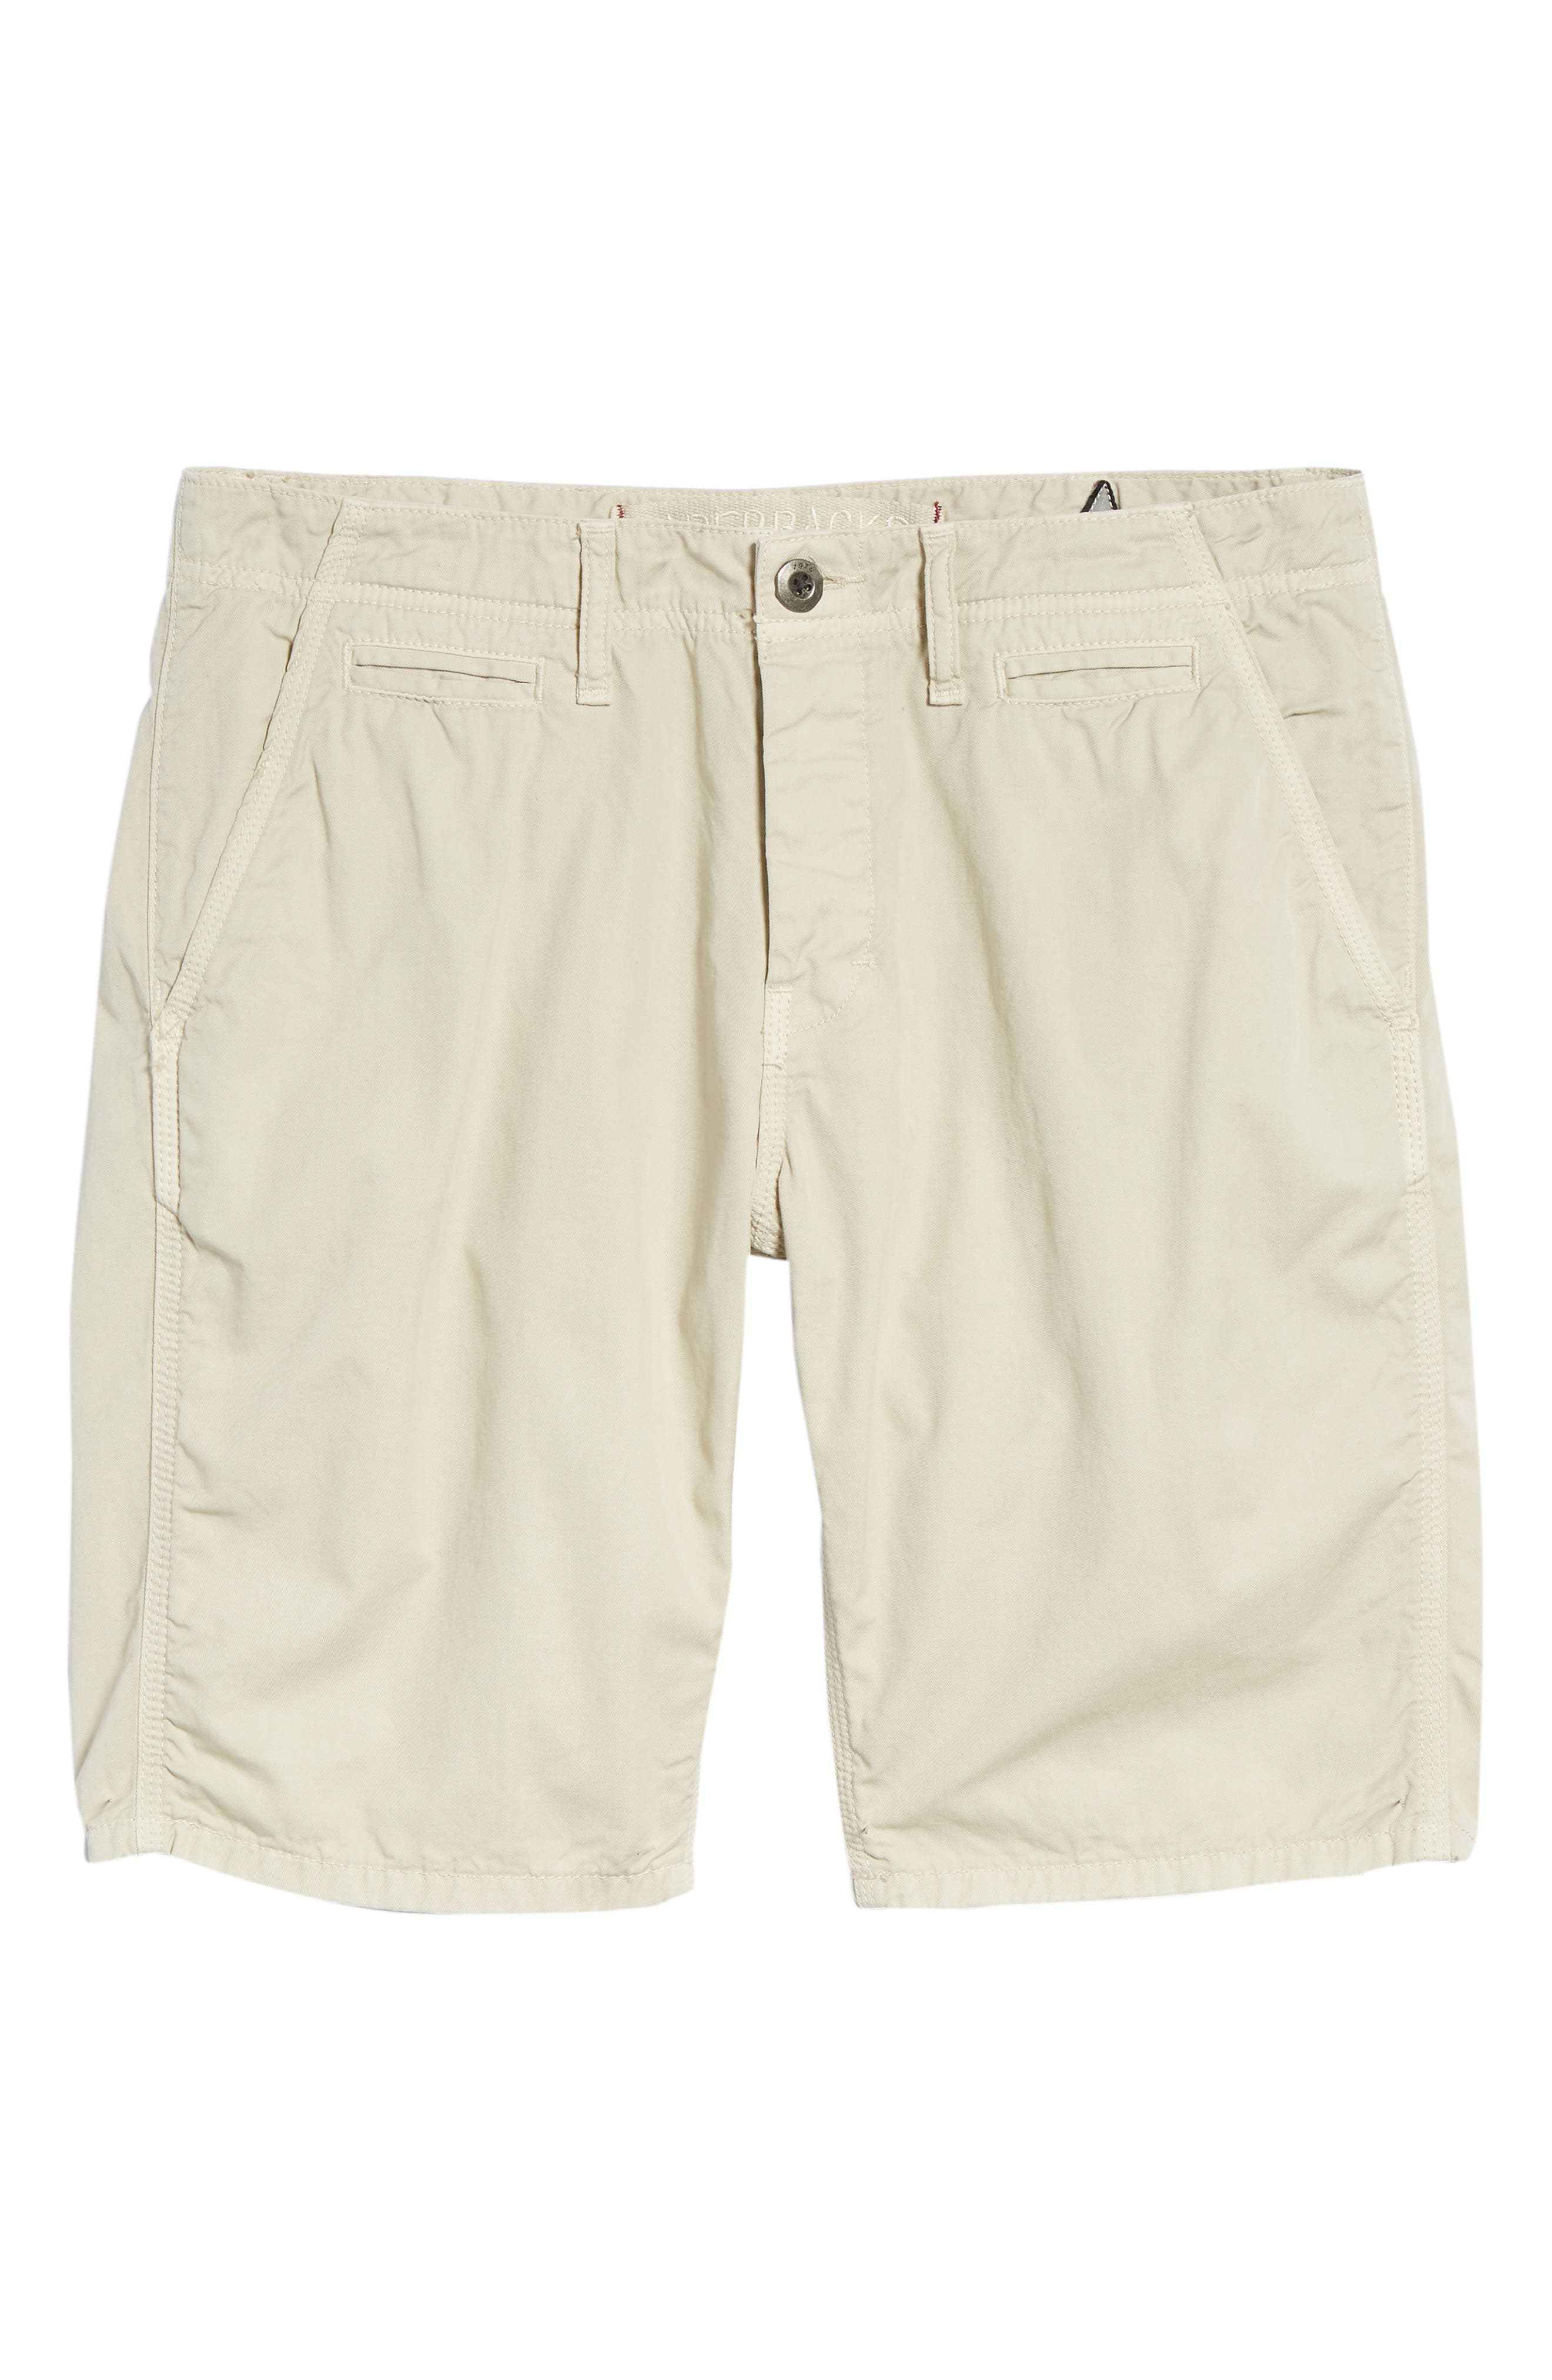 'Napa' Chino Shorts,                             Alternate thumbnail 66, color,